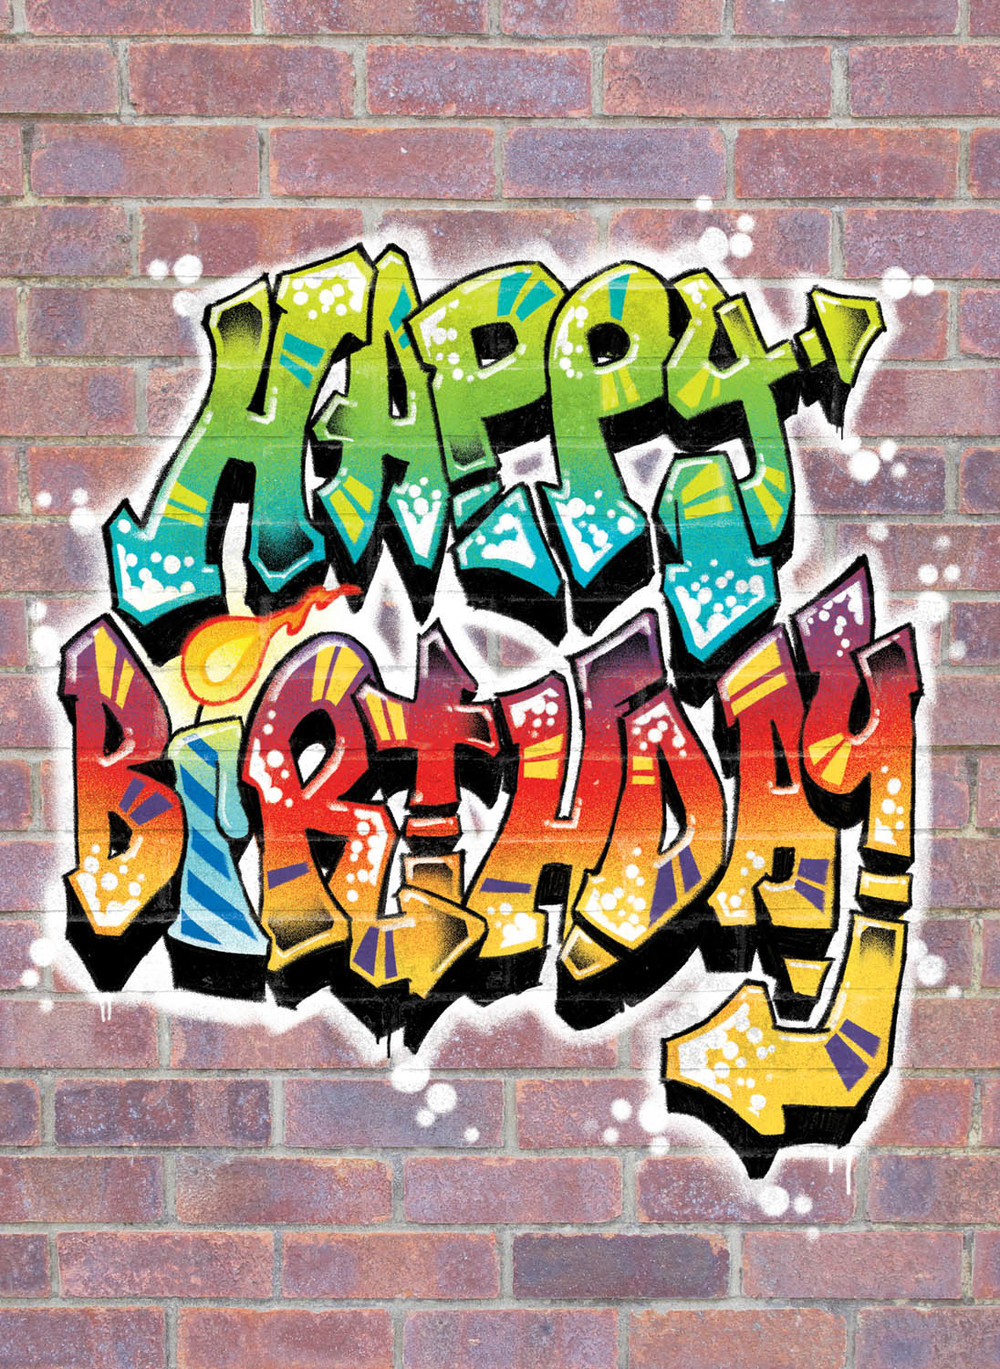 Graffiti boy no age.jpg